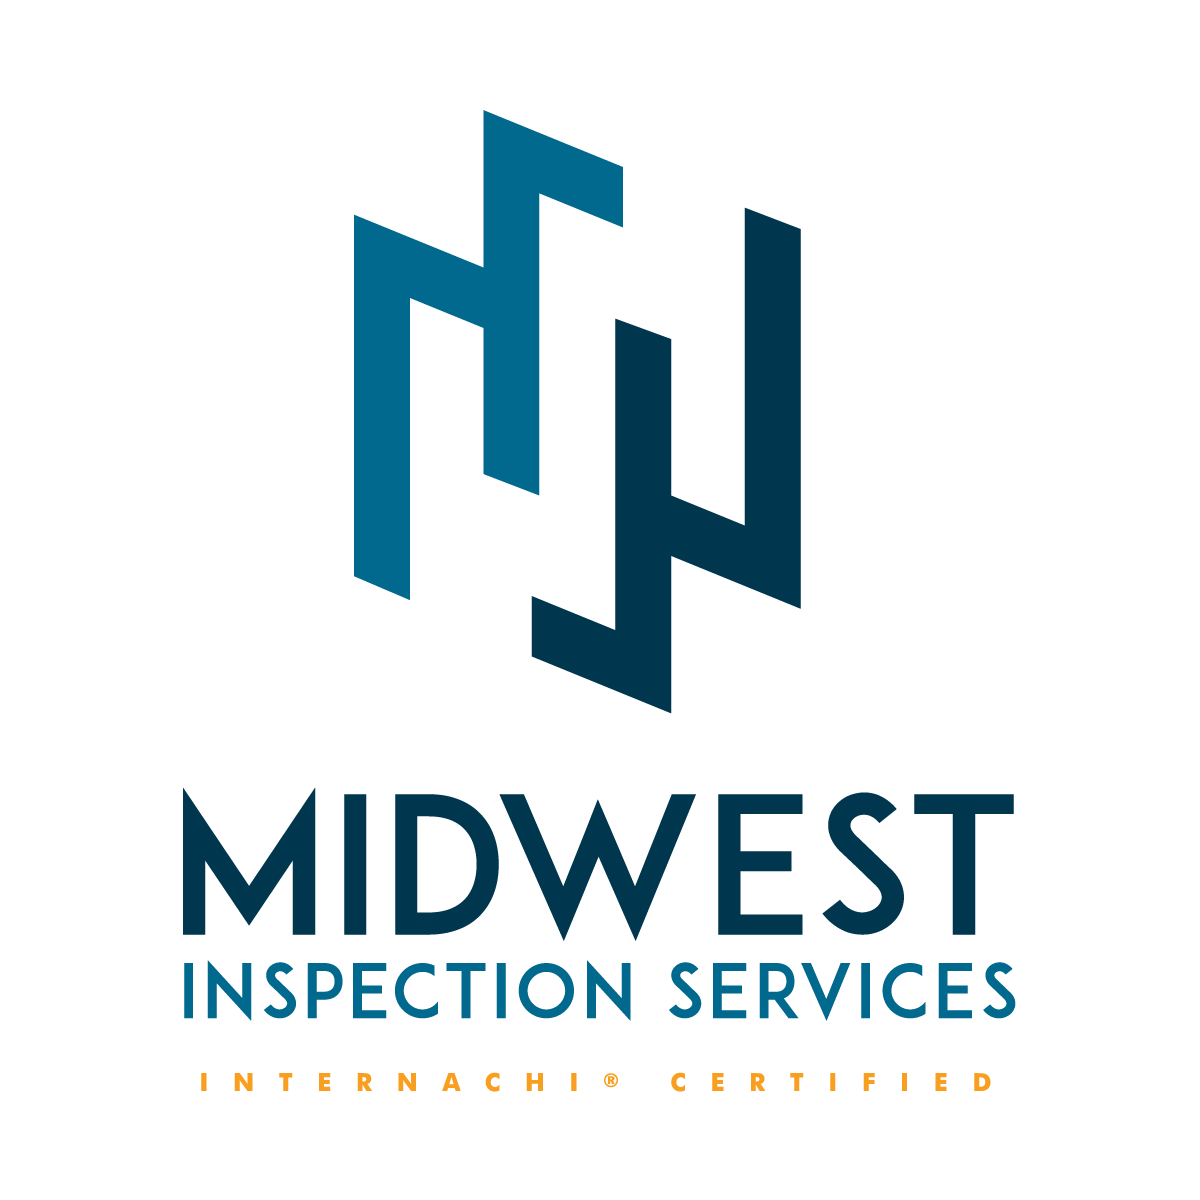 Midwest Inspection Services